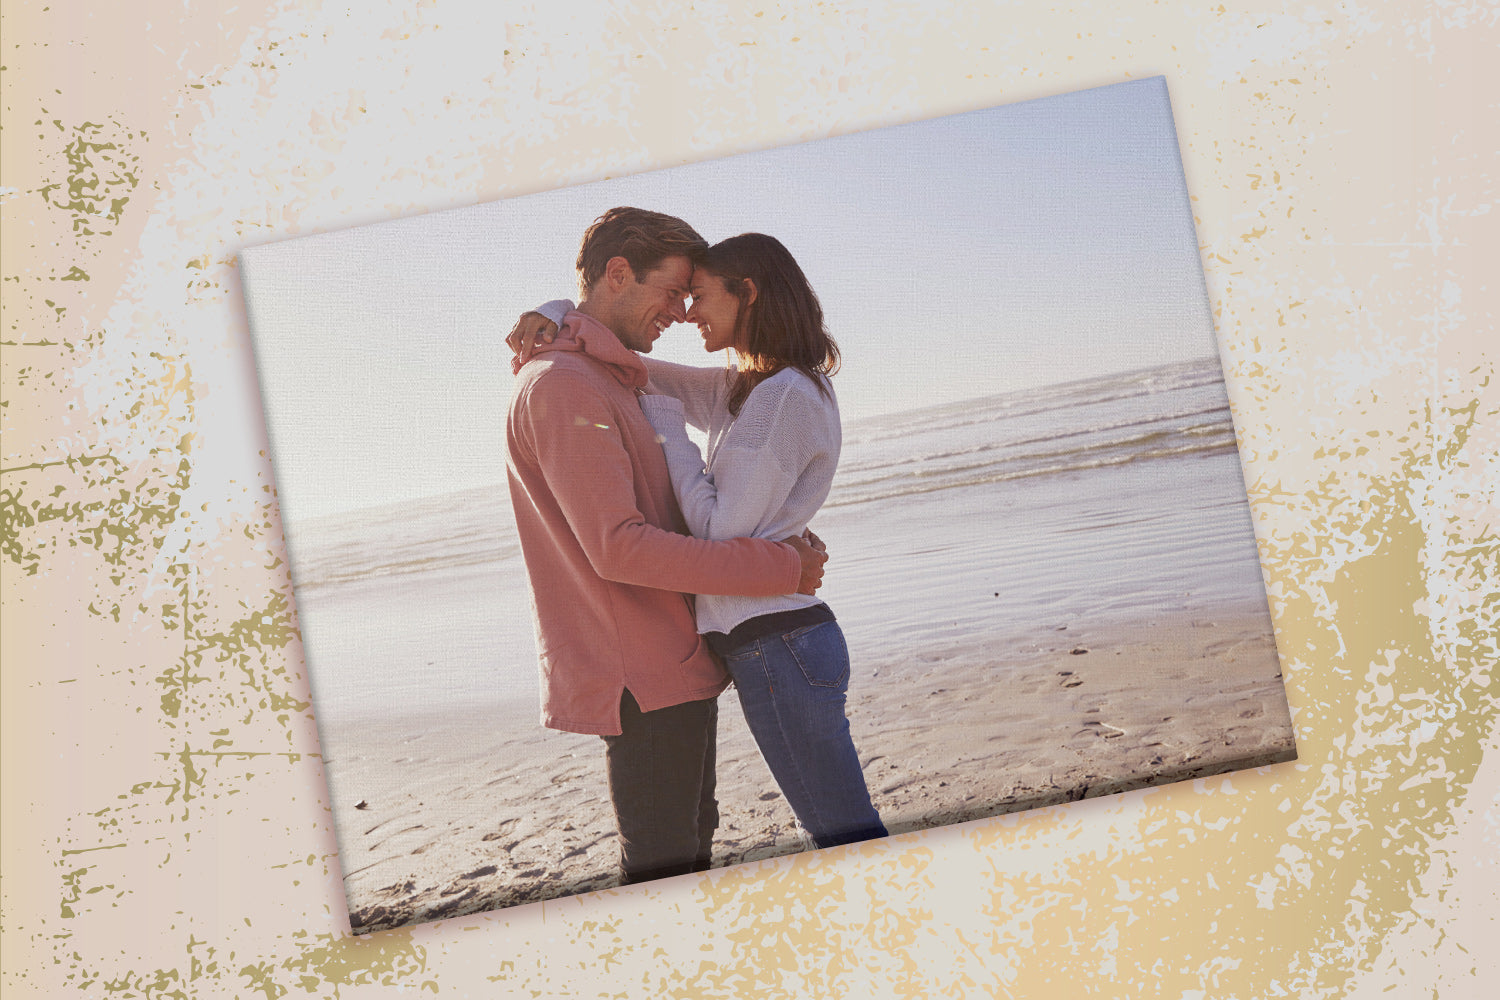 Romantic Photo of Couple on Beach Printed on Canvas by Posterjack